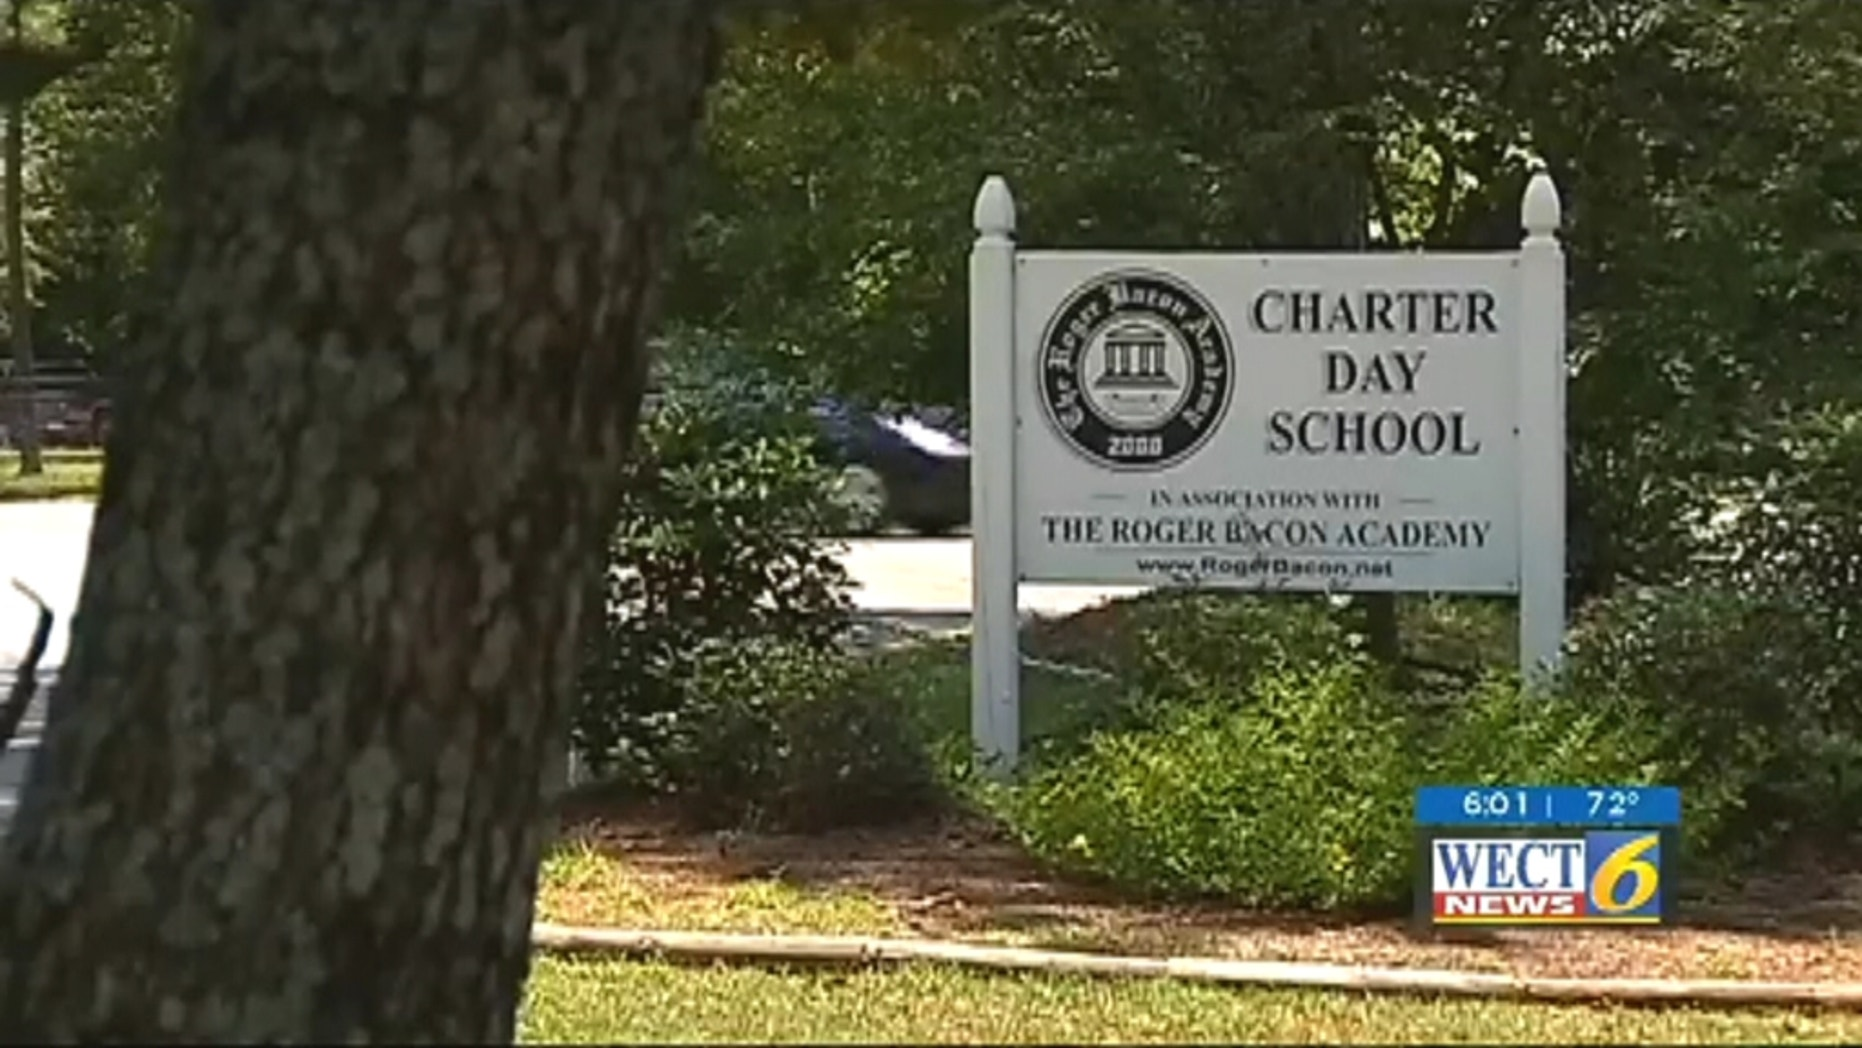 Students run outside of school as Charter Day dress code was recently deemed unconstitutional